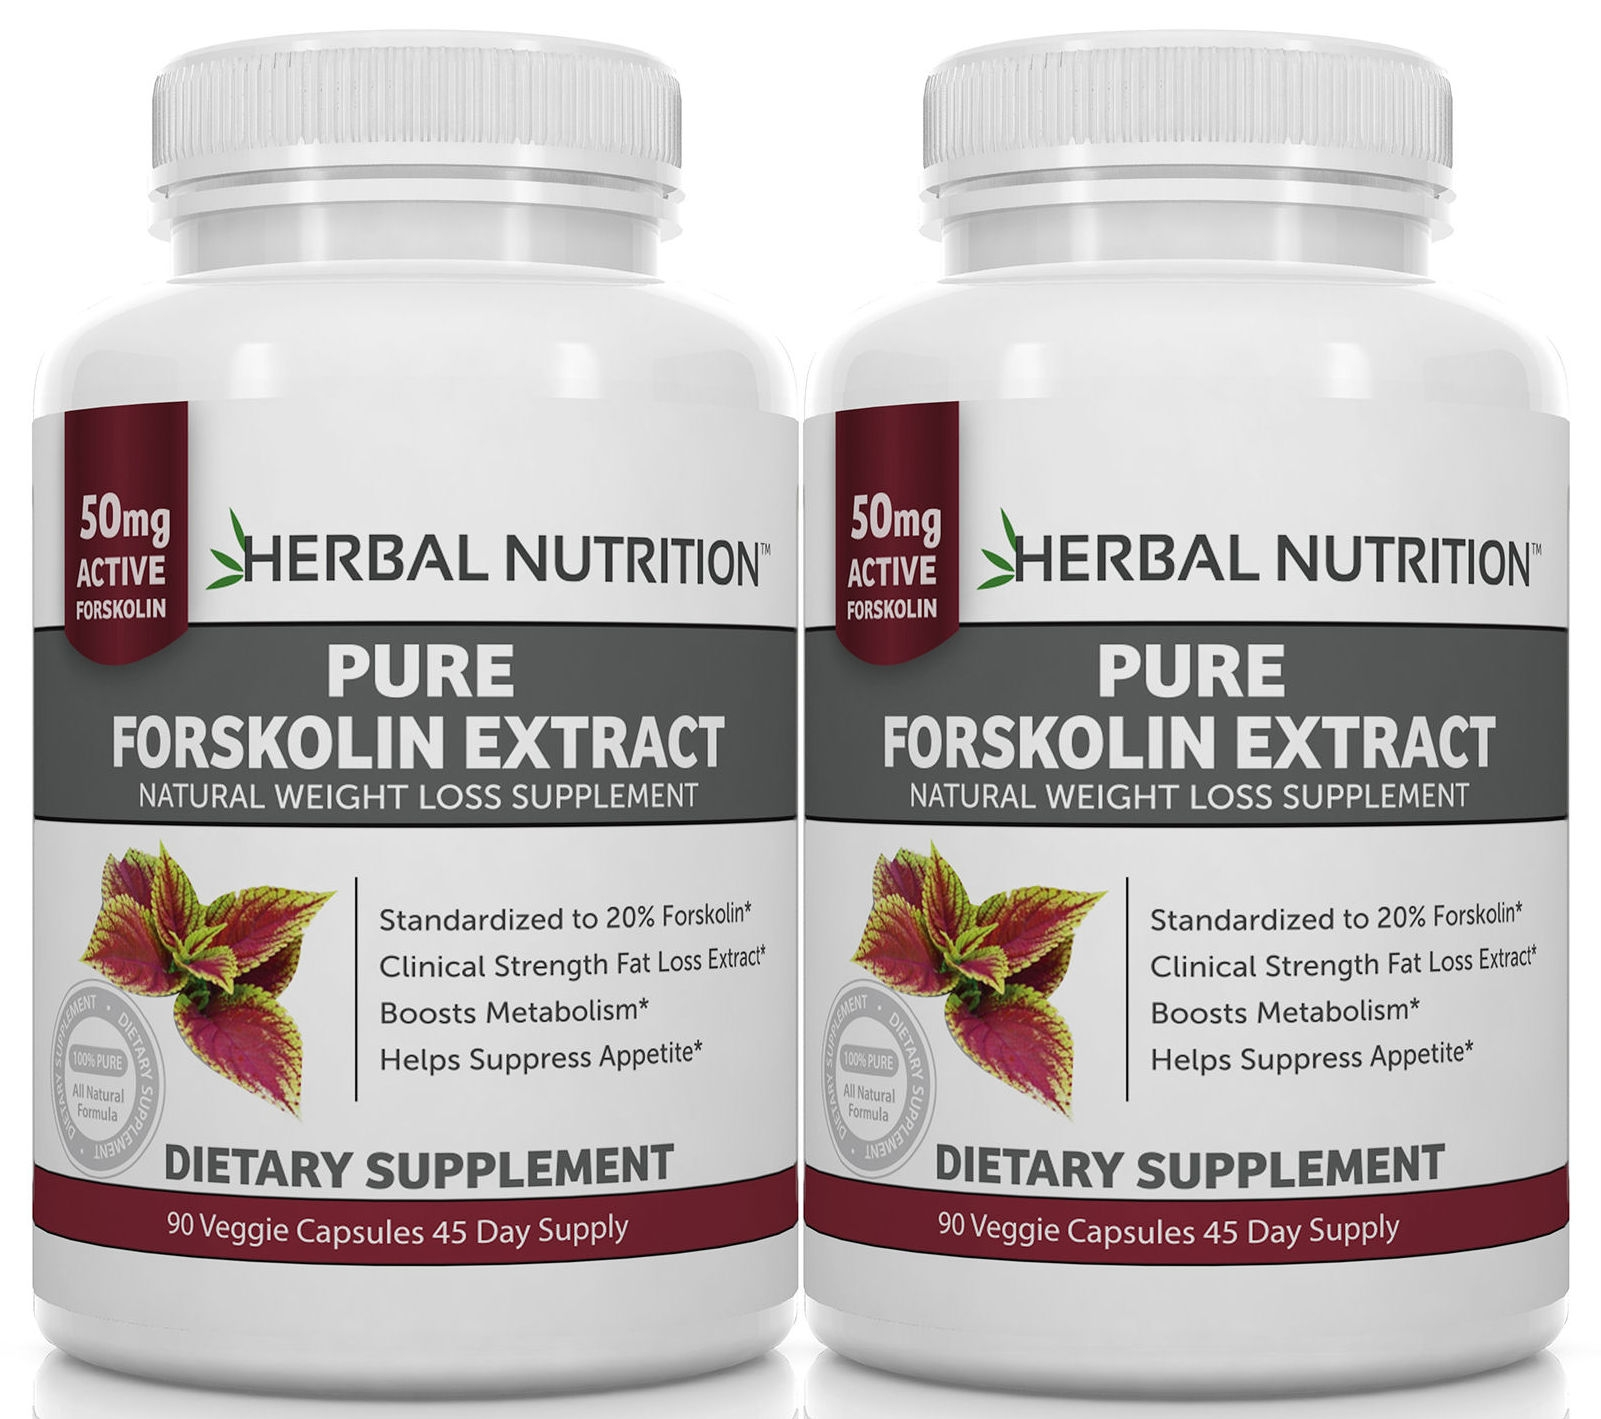 Forskolin Extract Ad Image